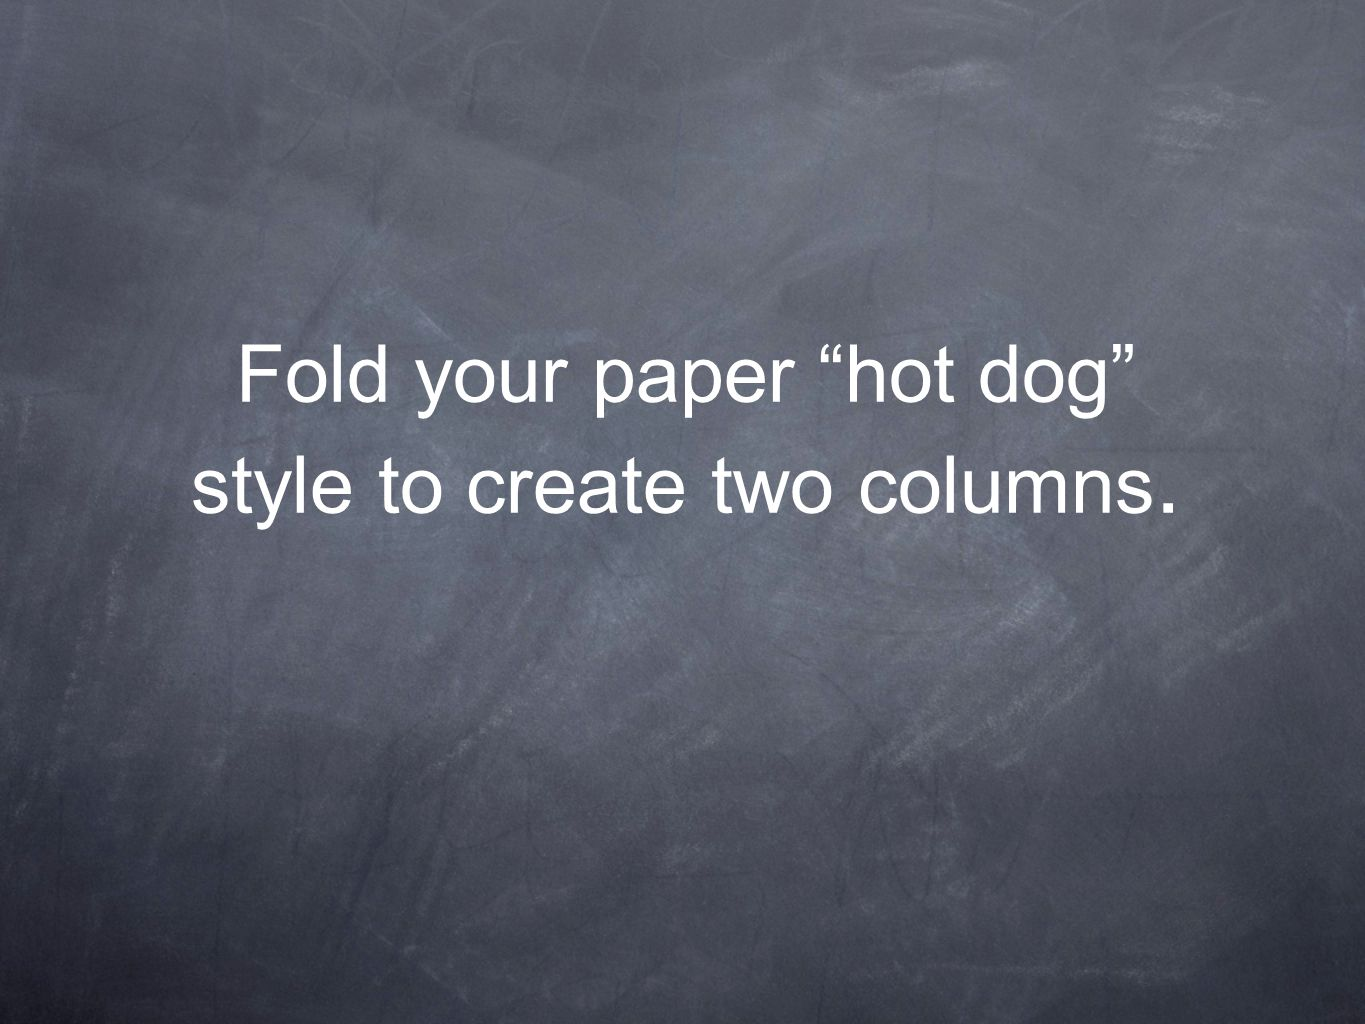 Fold your paper hot dog style to create two columns.